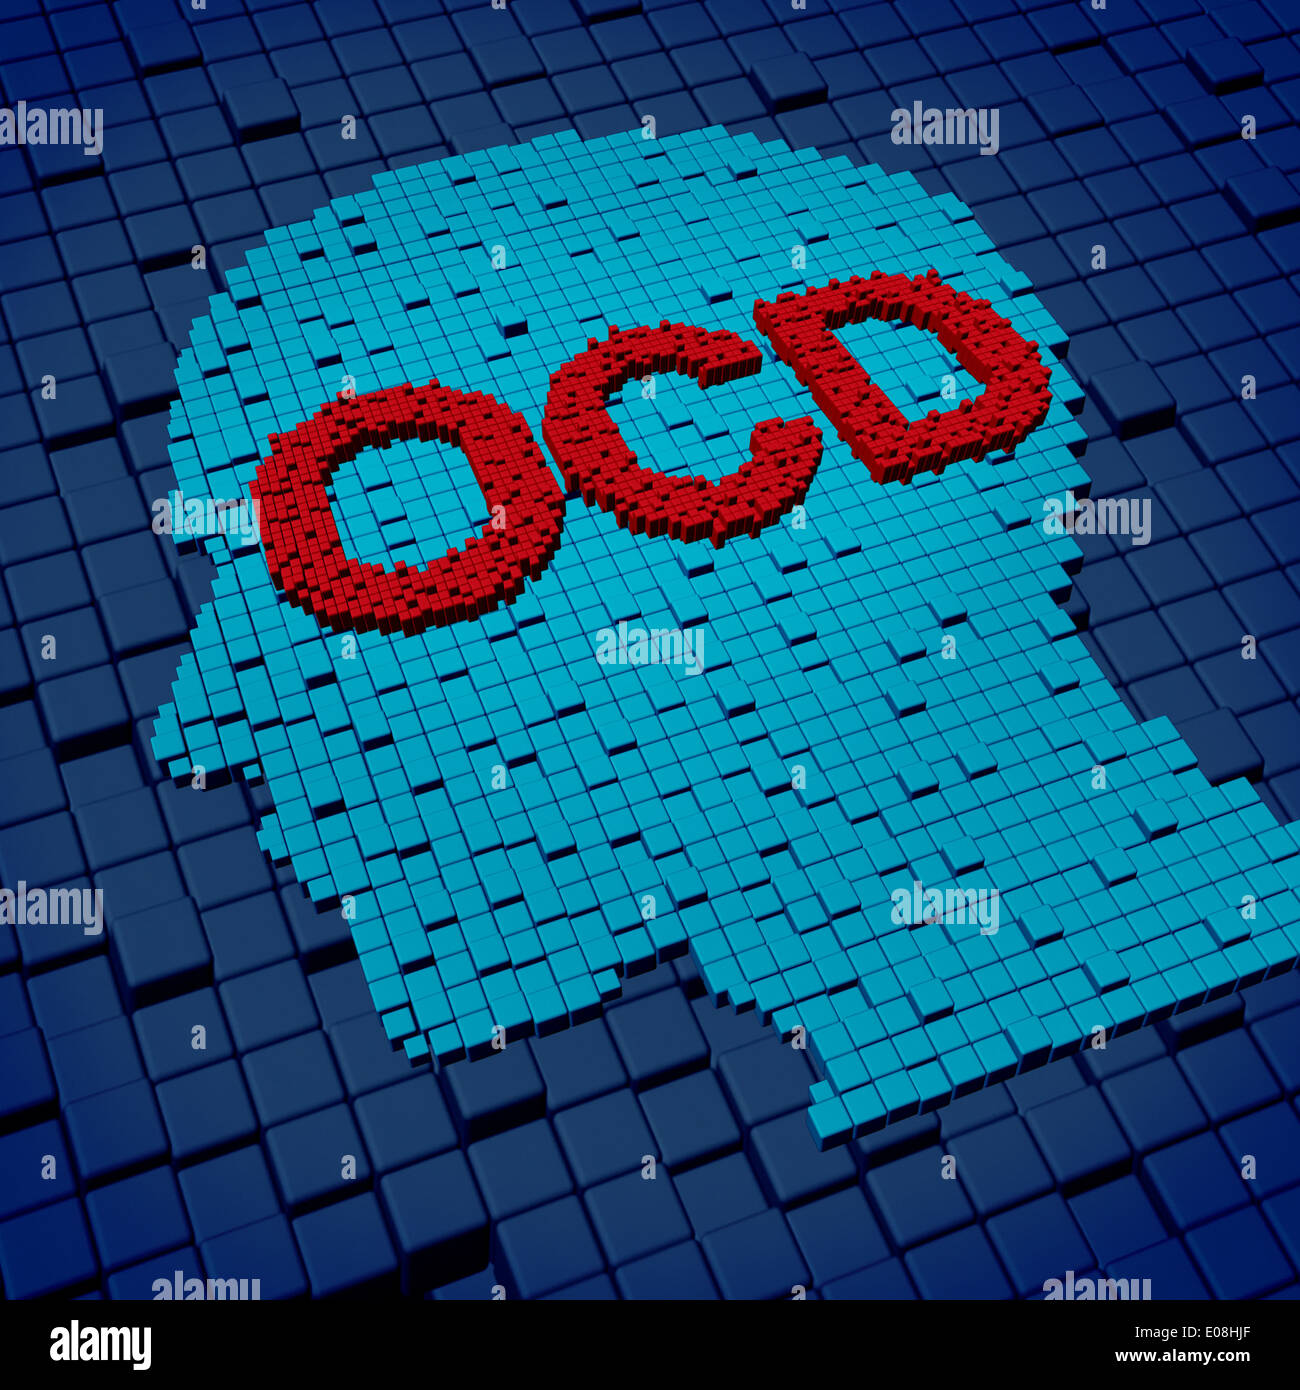 Ocd Stock Photos & Ocd Stock Images - Alamy